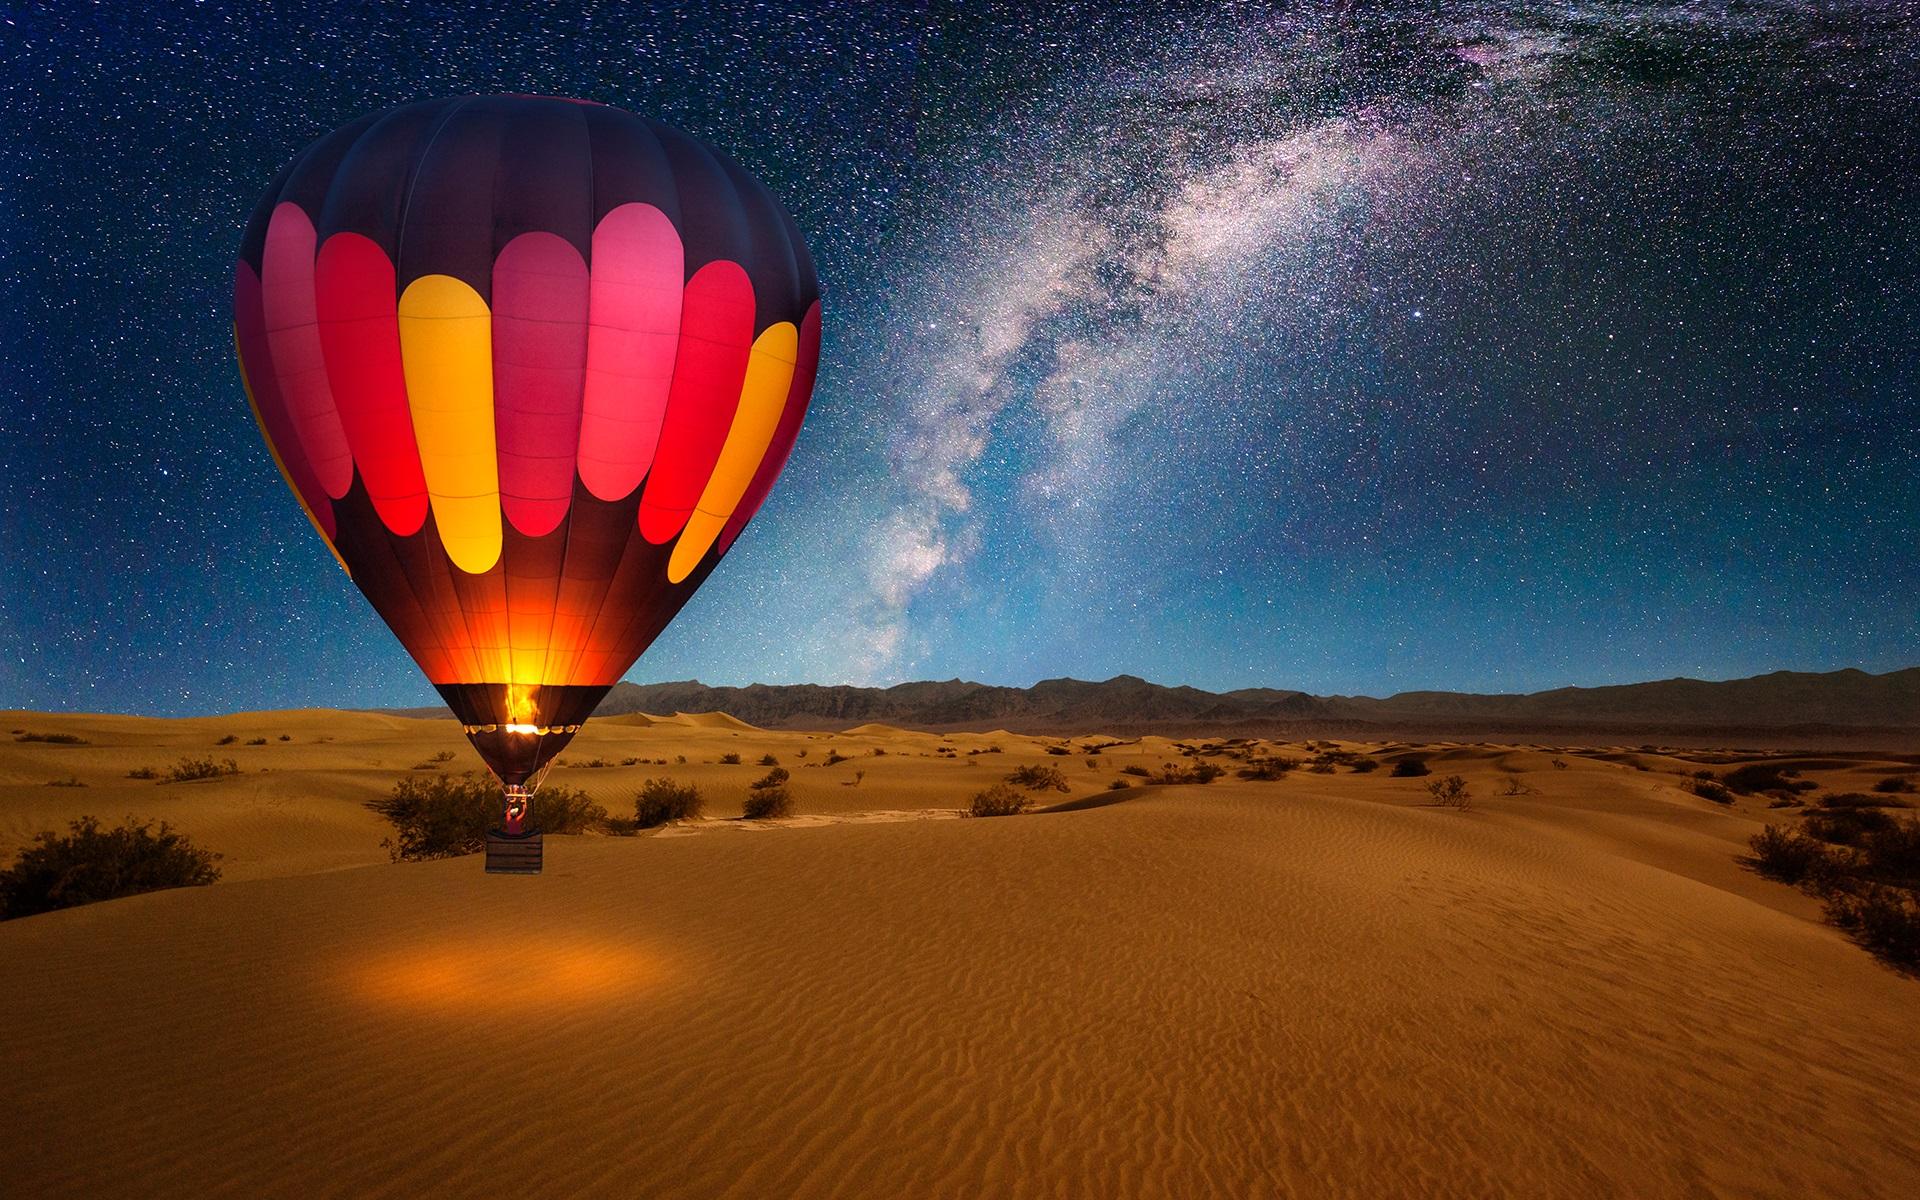 Cool Wallpaper Night Hot Air Balloon - 890026  Pictures-692896.jpg